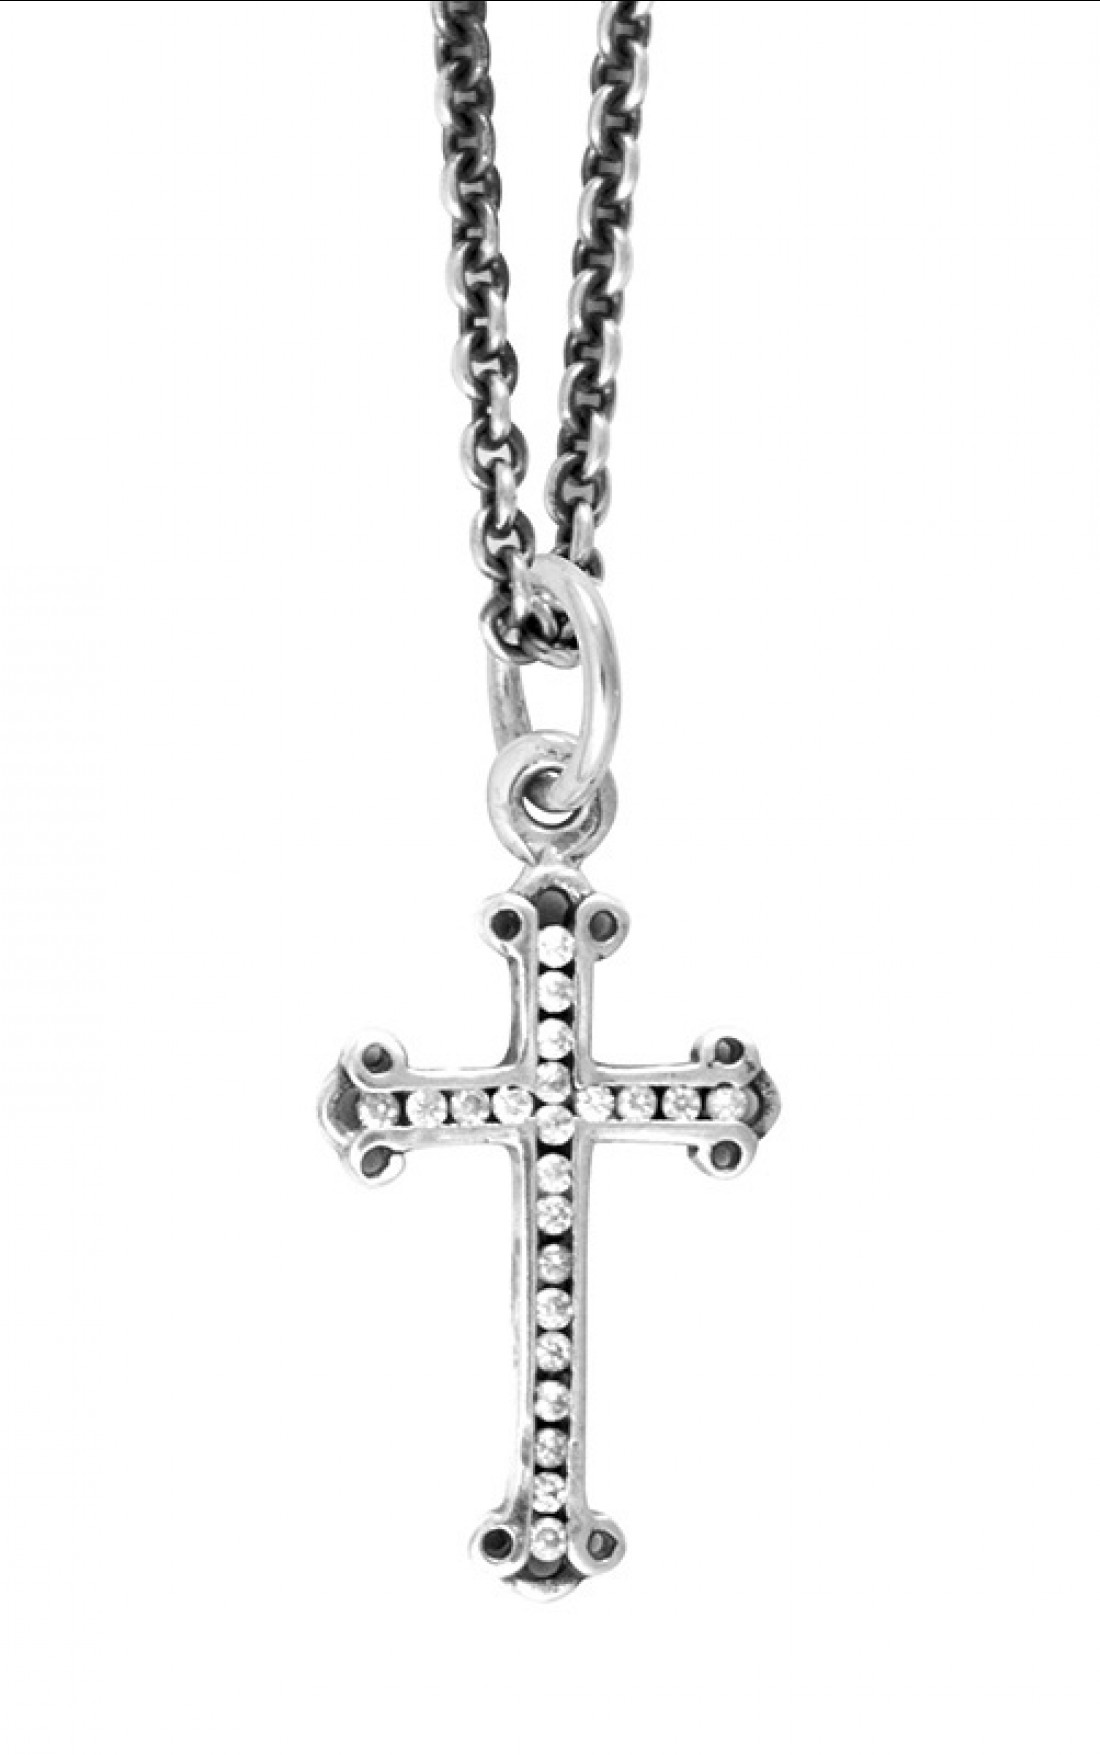 King Baby - MIcro Cz Pave Traditional Cross Pendant (K10-5478)